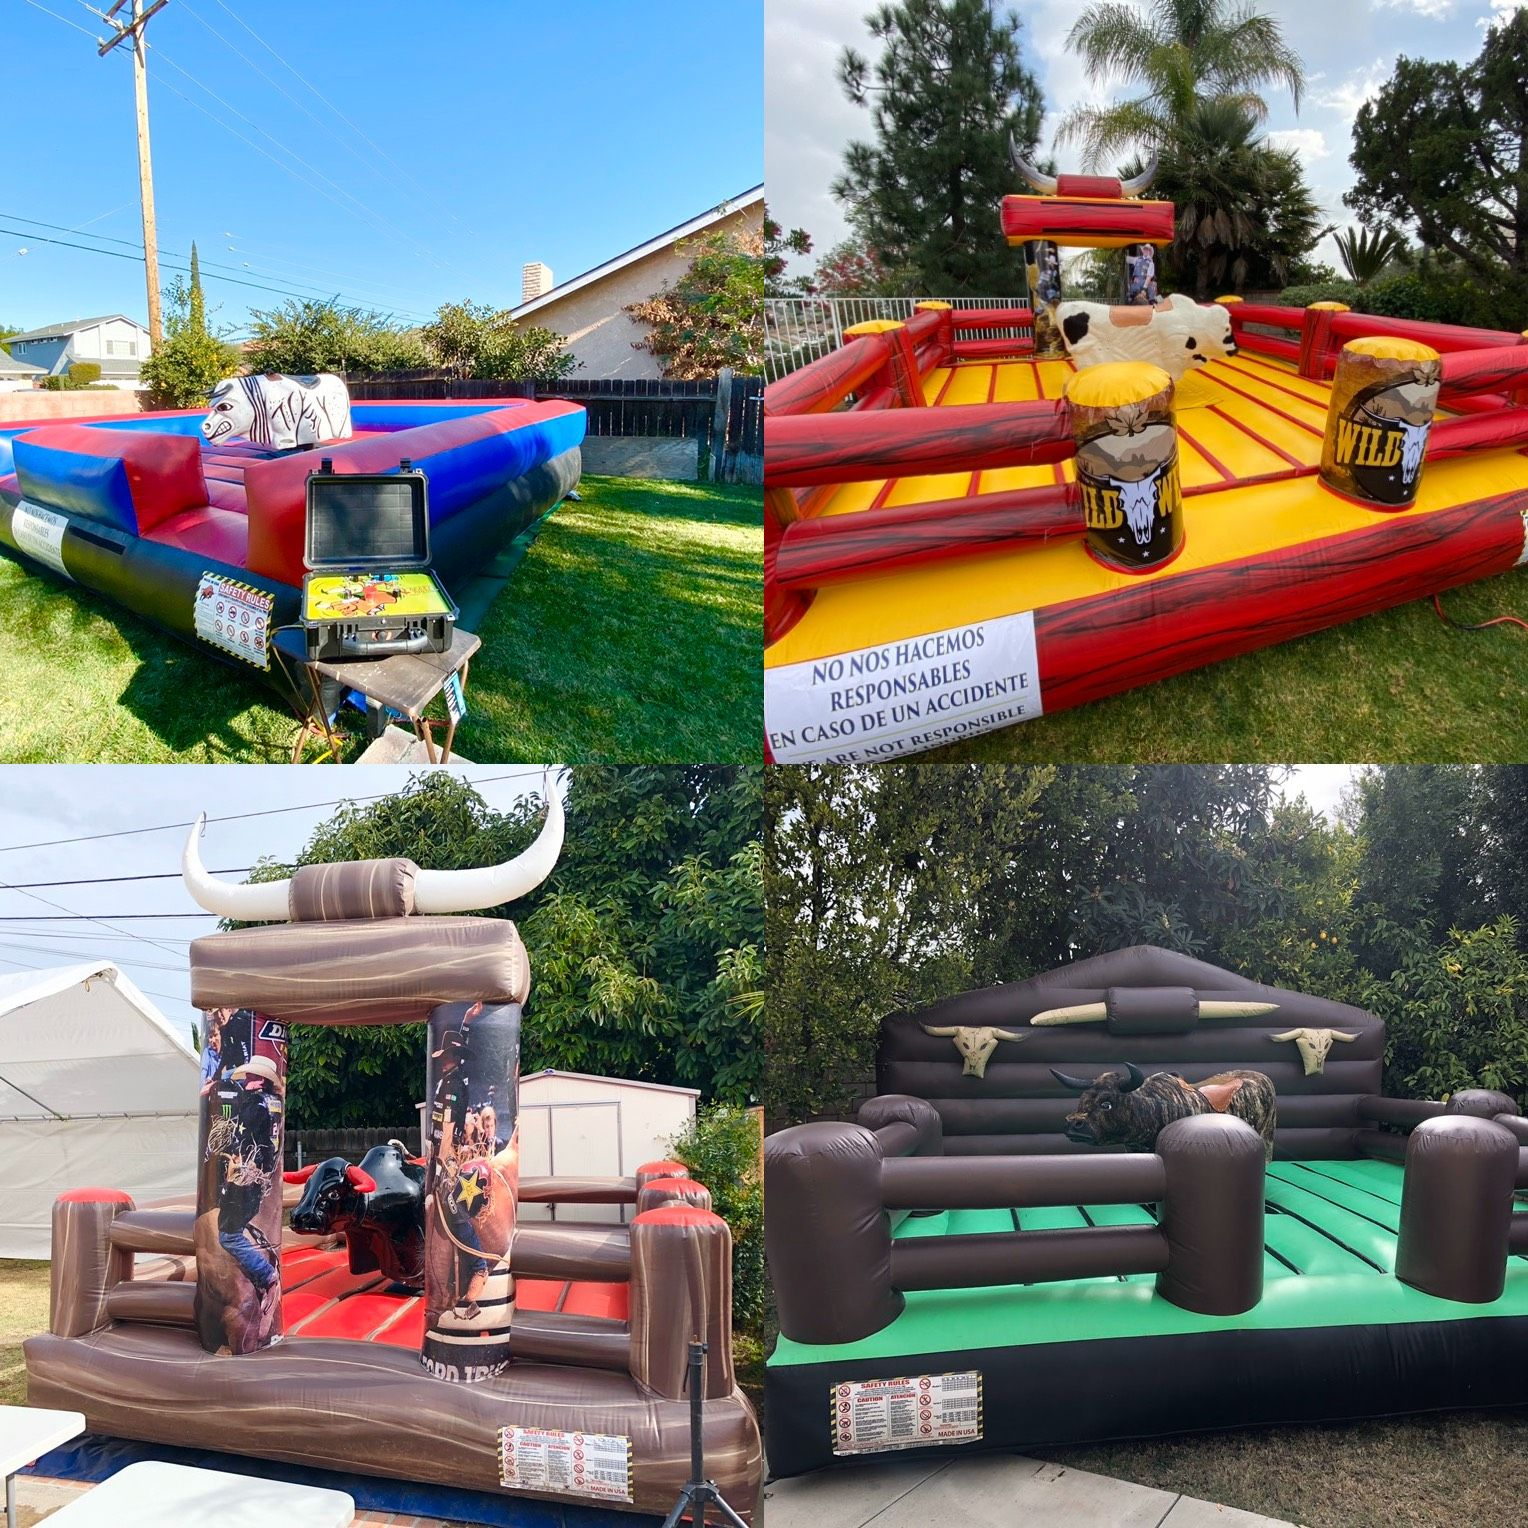 Crazy rides offers amazing mechanical bulls that safely